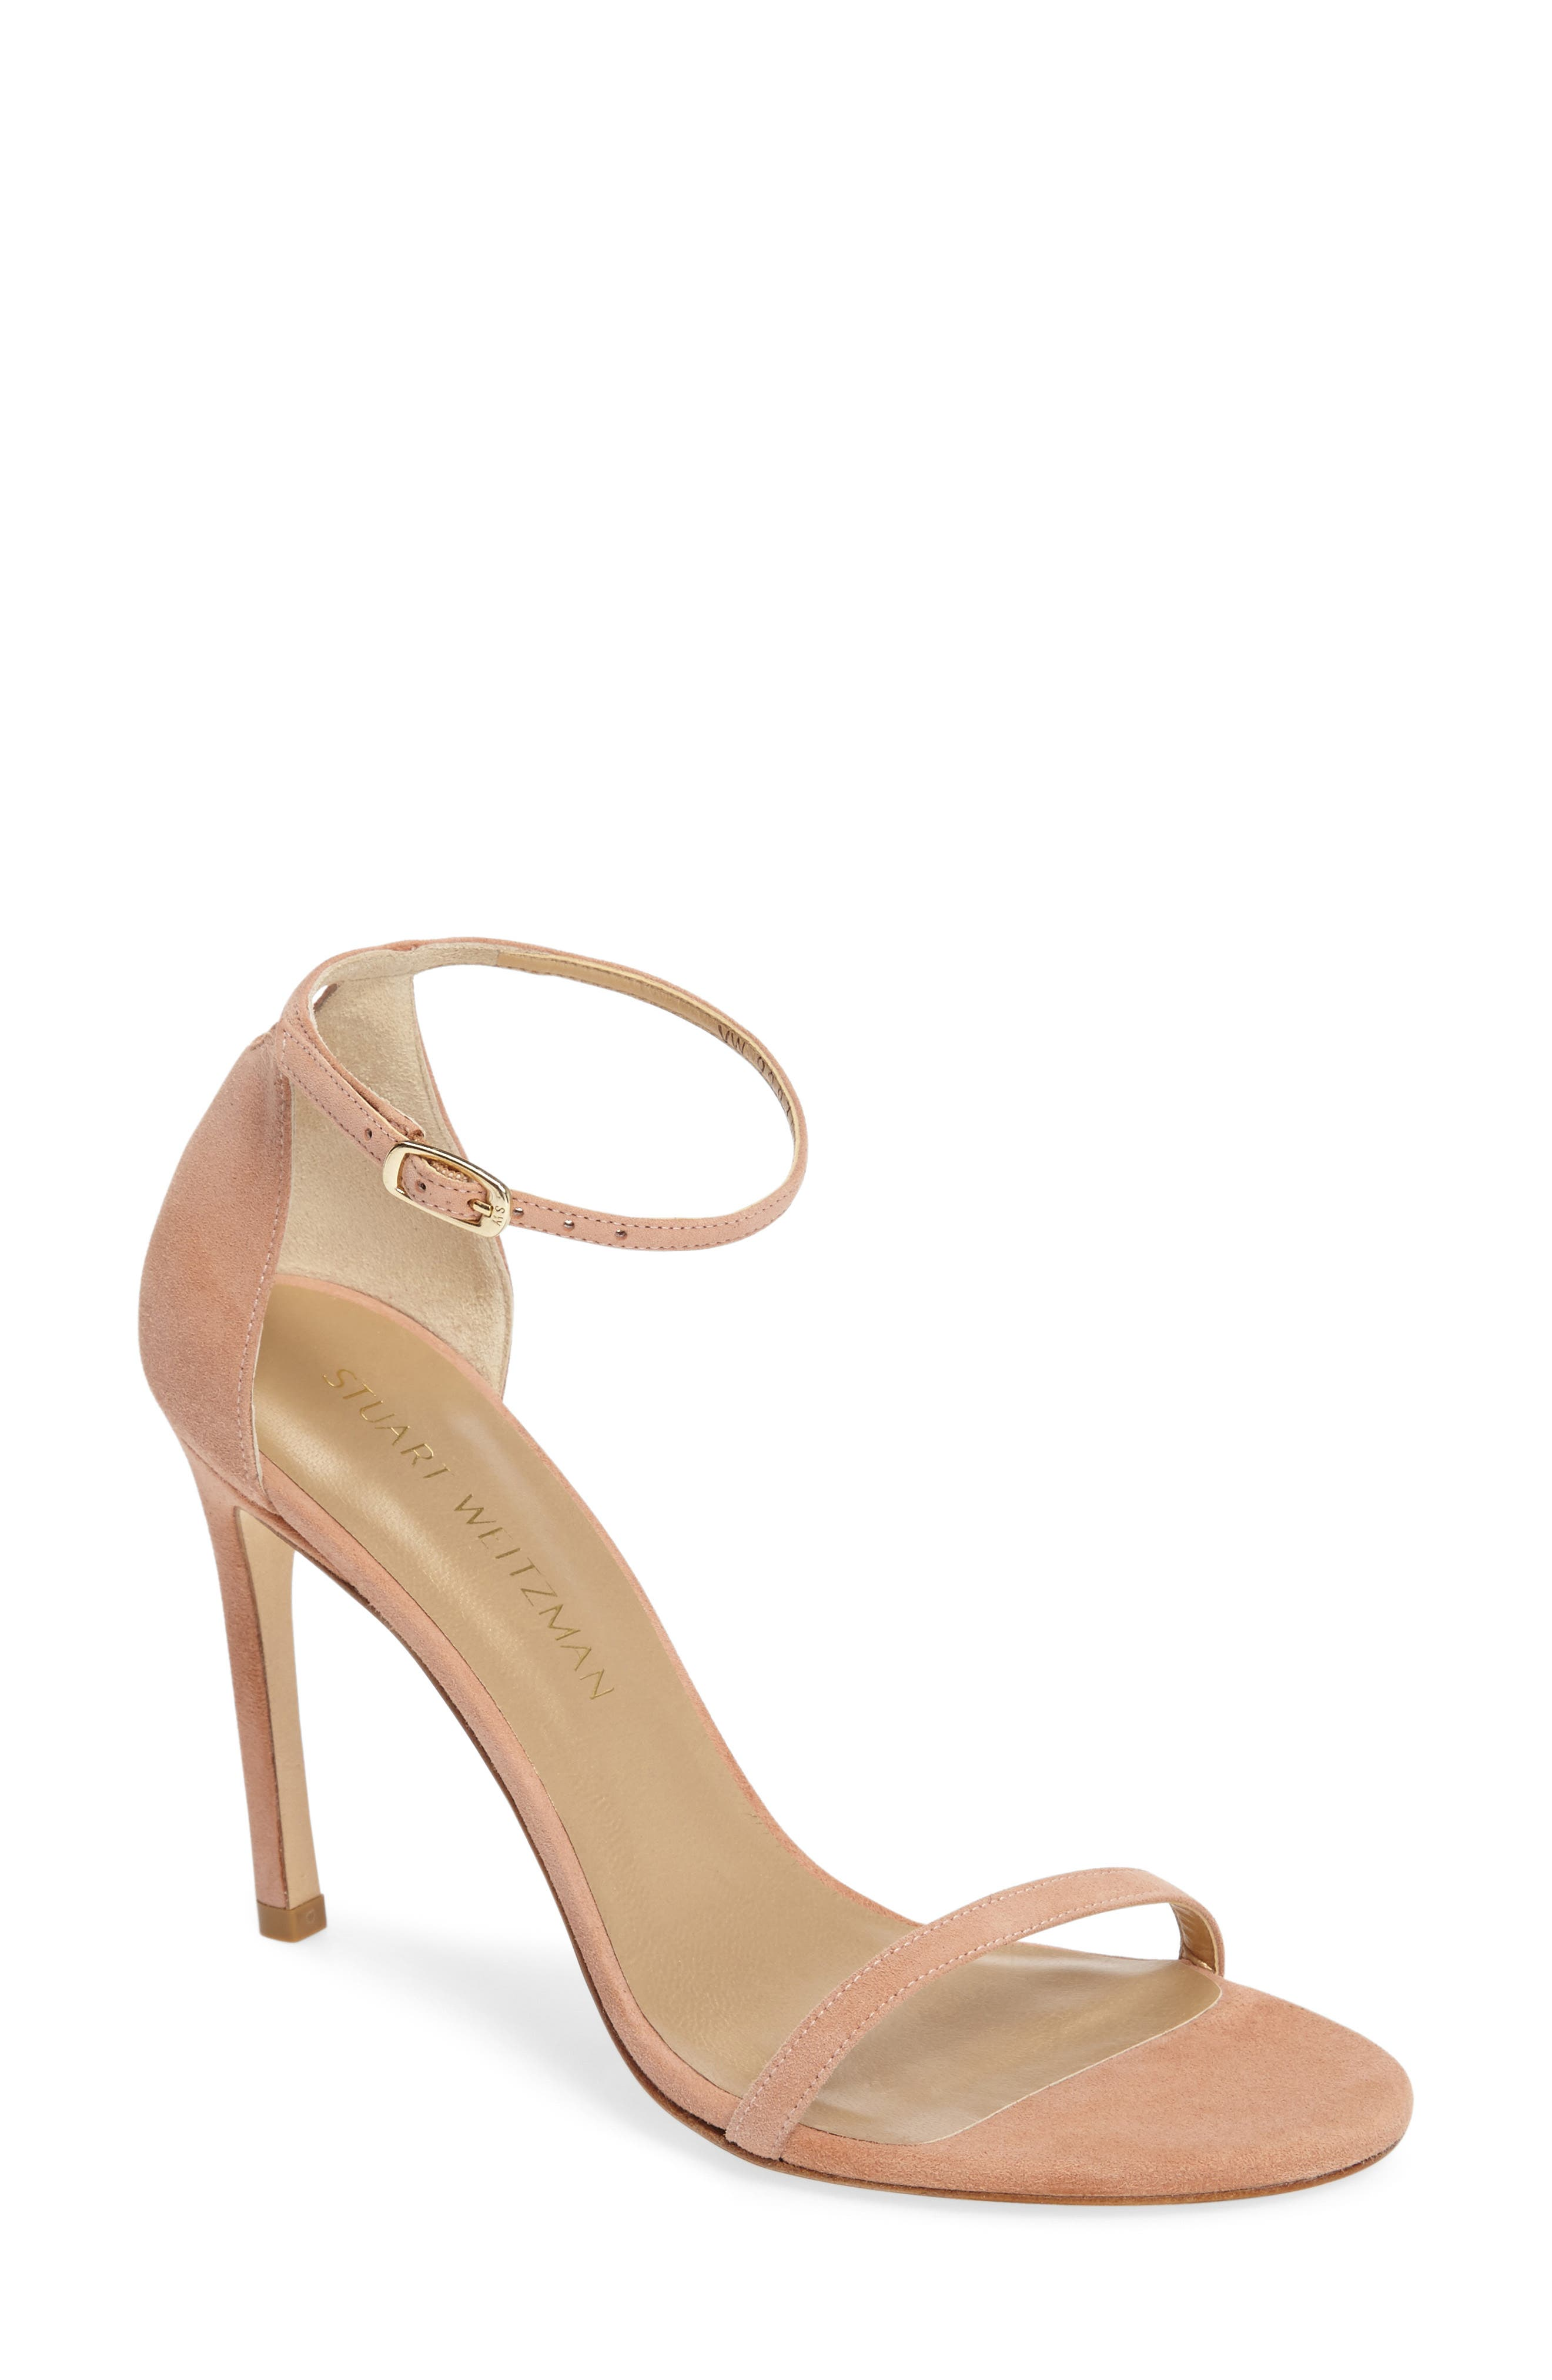 Nudistsong Ankle Strap Sandal,                             Main thumbnail 23, color,